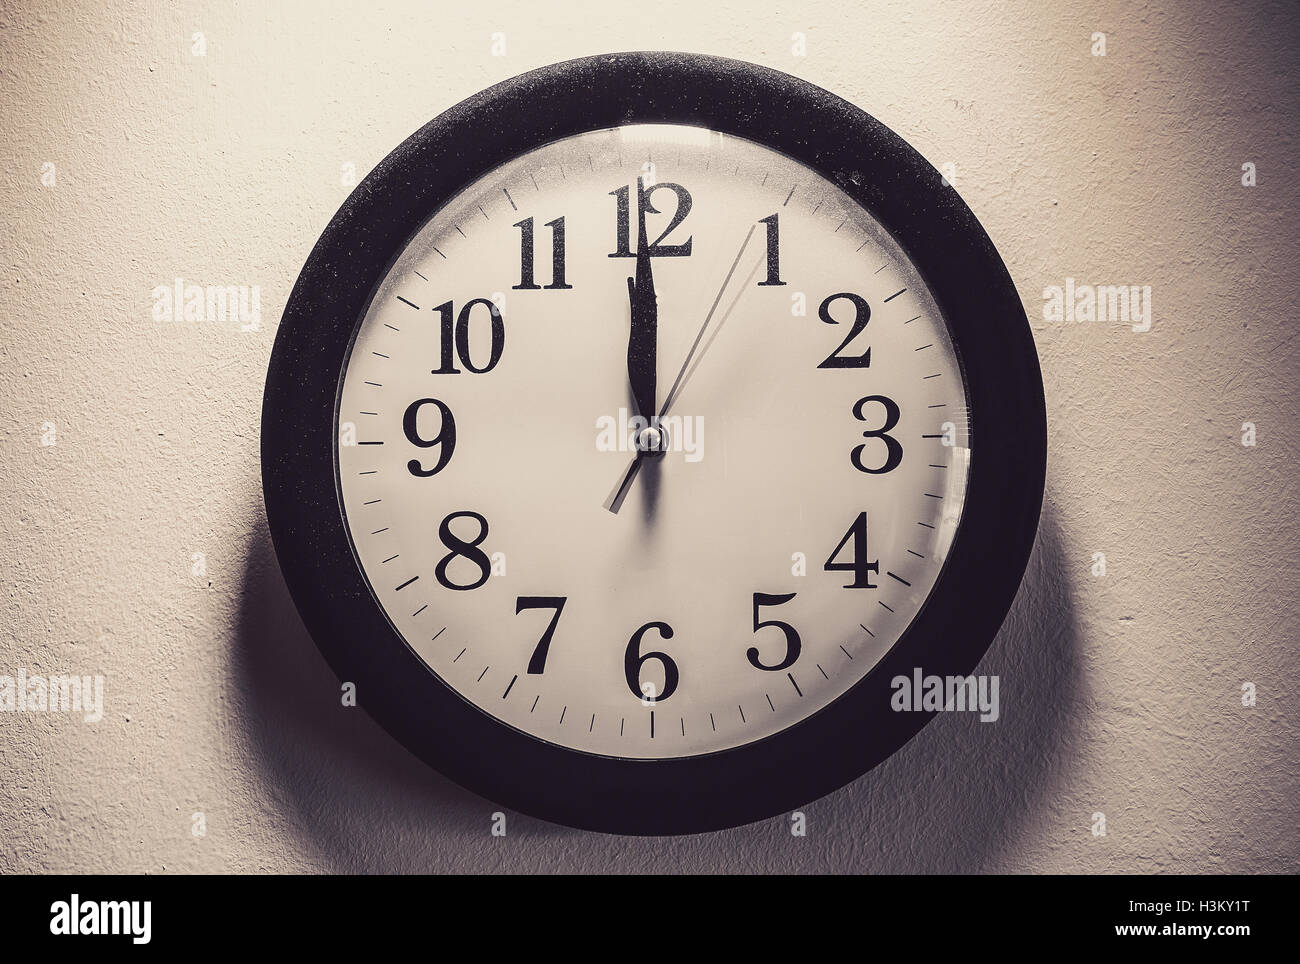 Details of a dusty clock on the white wall, retro style. - Stock Image